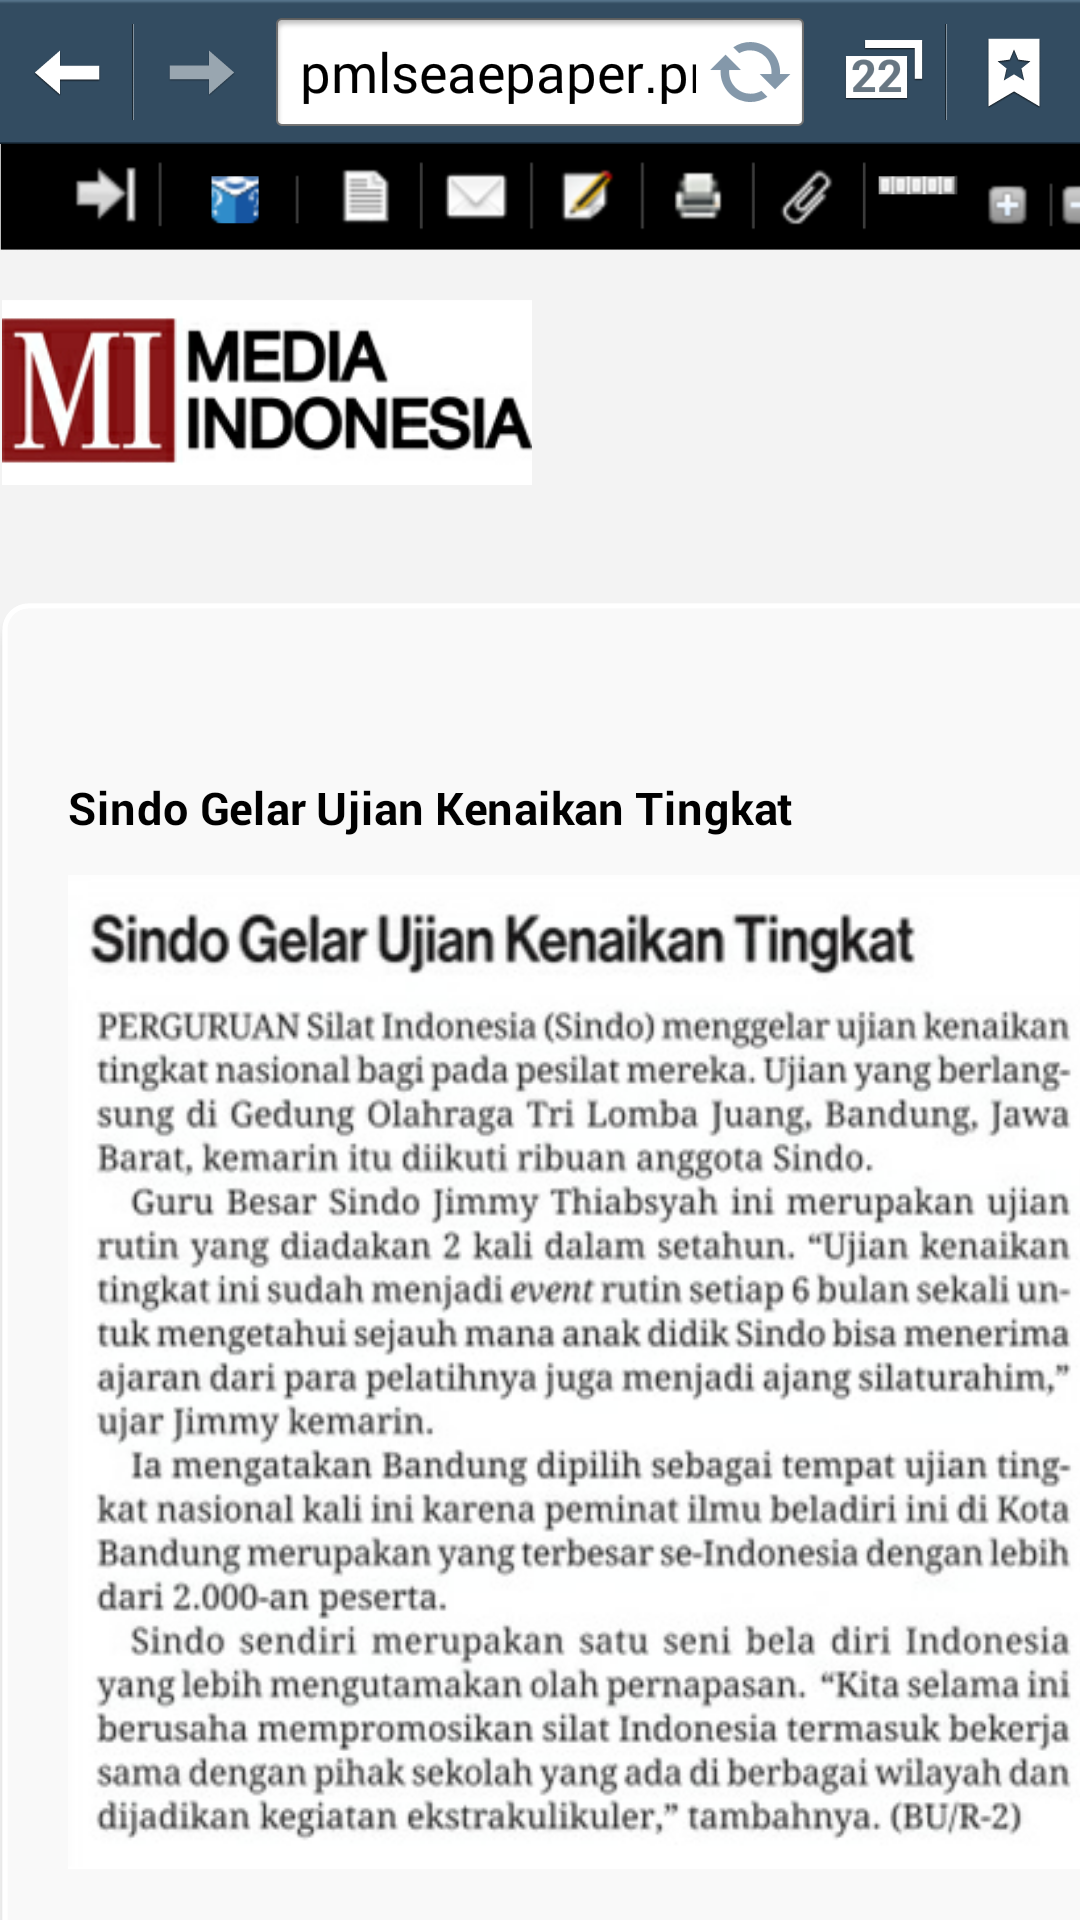 SINDO in Media Indonesia newspaper